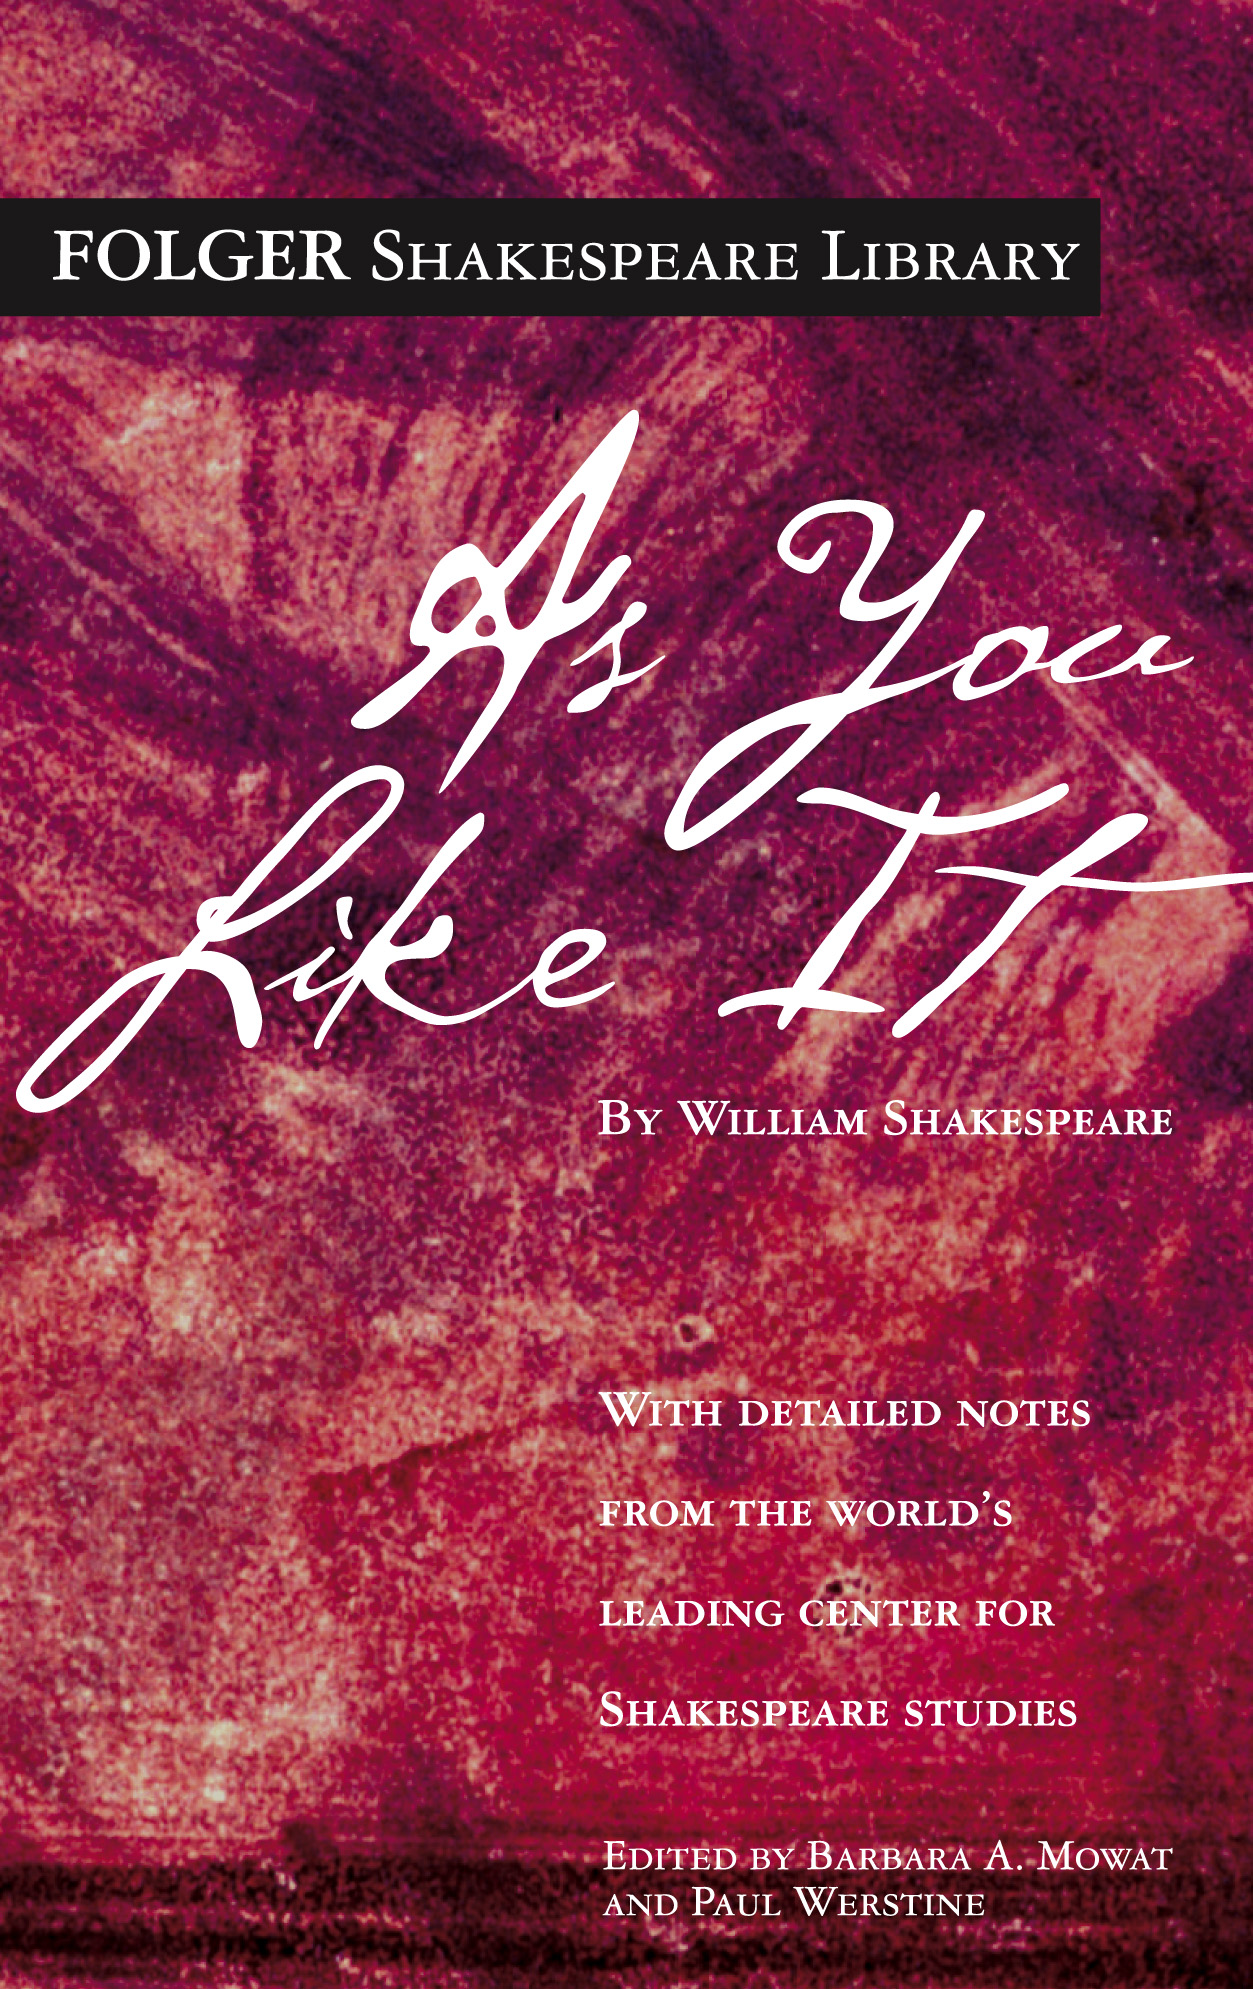 shakespeare essay as you like it Research paper on kenneth branagh's as you like it as you like it research papers delve into an order placed on an analysis of shakespeare and also to view his performances with a critical eye.